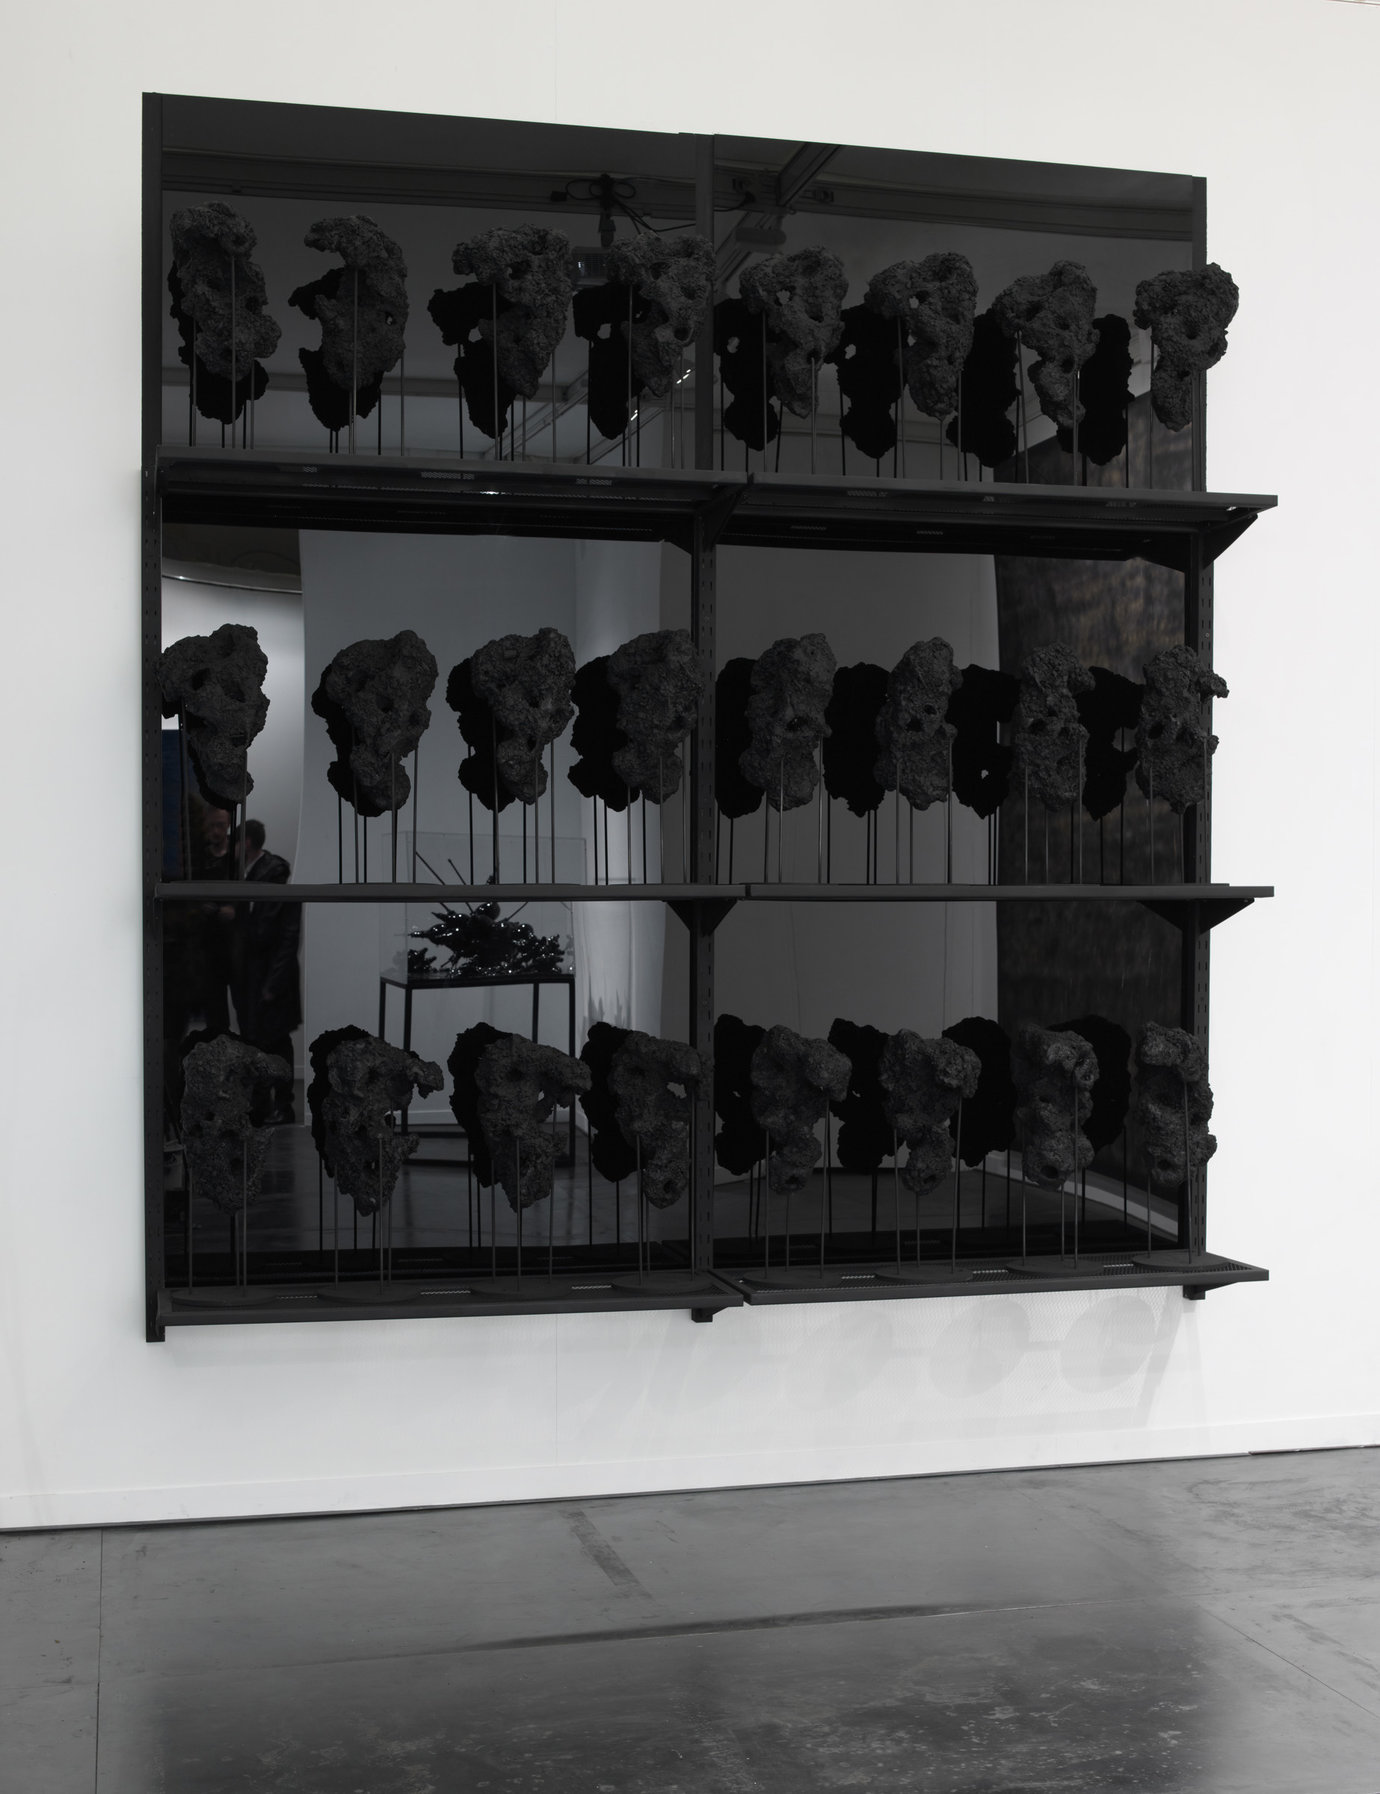 , 2011. black wax, carbon, molded rocks, resin, steel pedestals.